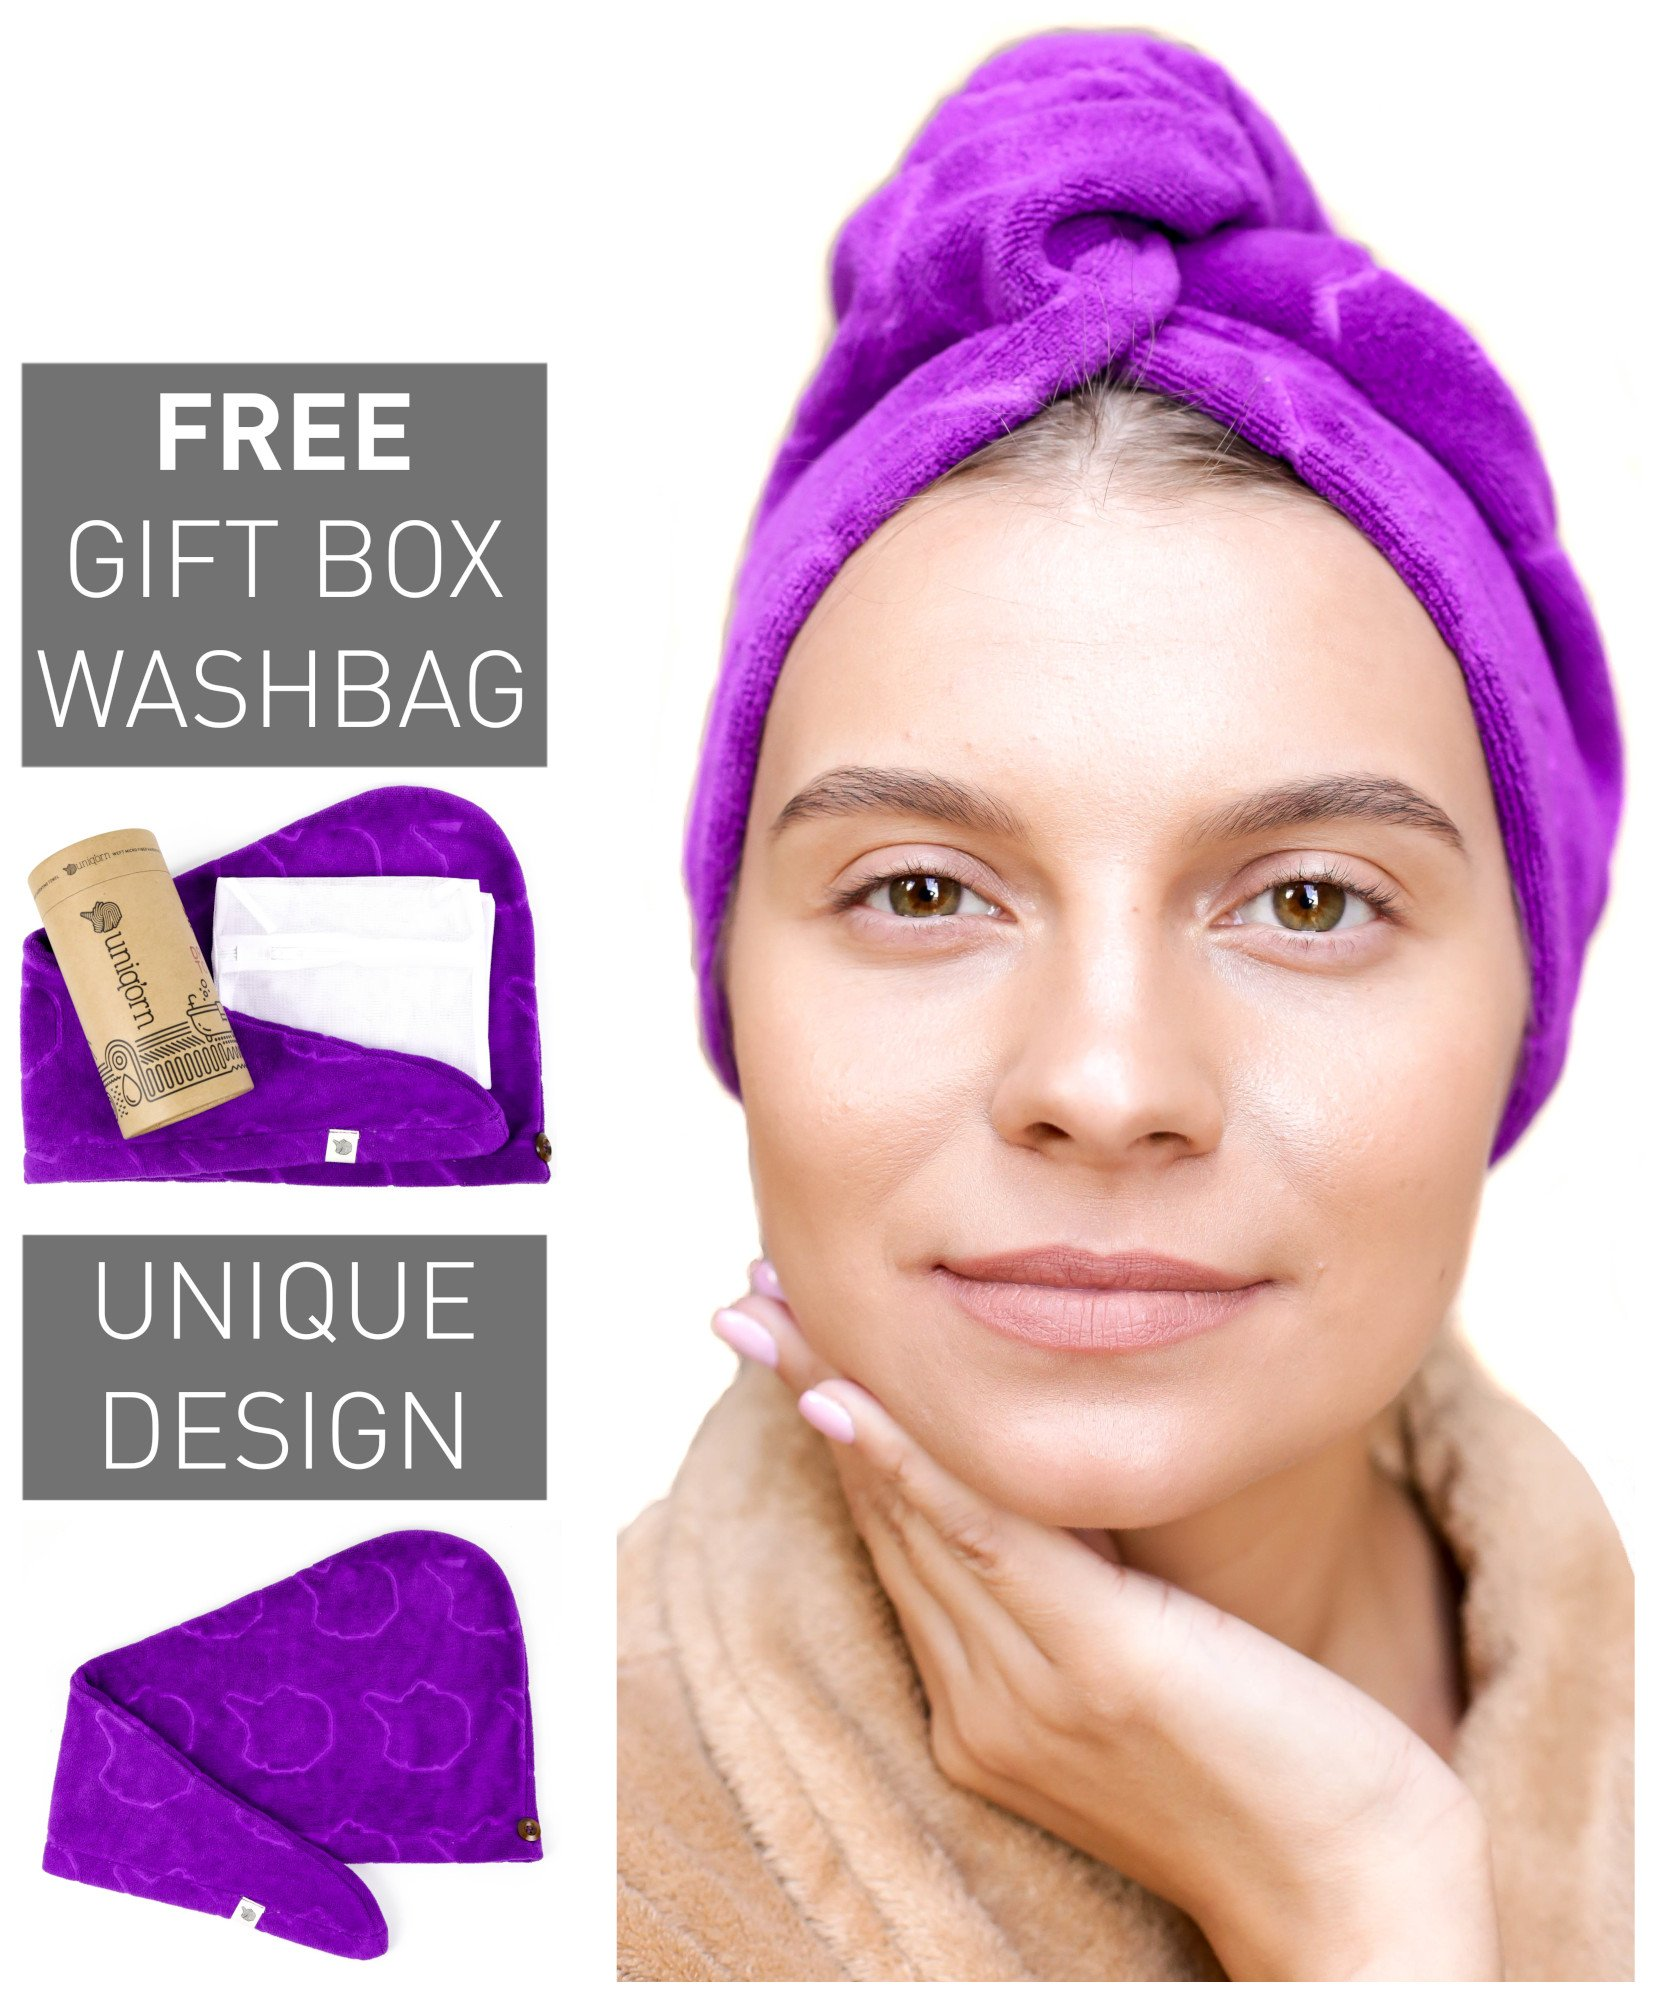 Uniq'orn - Ultra Absorbent & Quick Dry Microfiber Hair Towel, Large Size, Mesh Laundry Bag & Gift Box Included